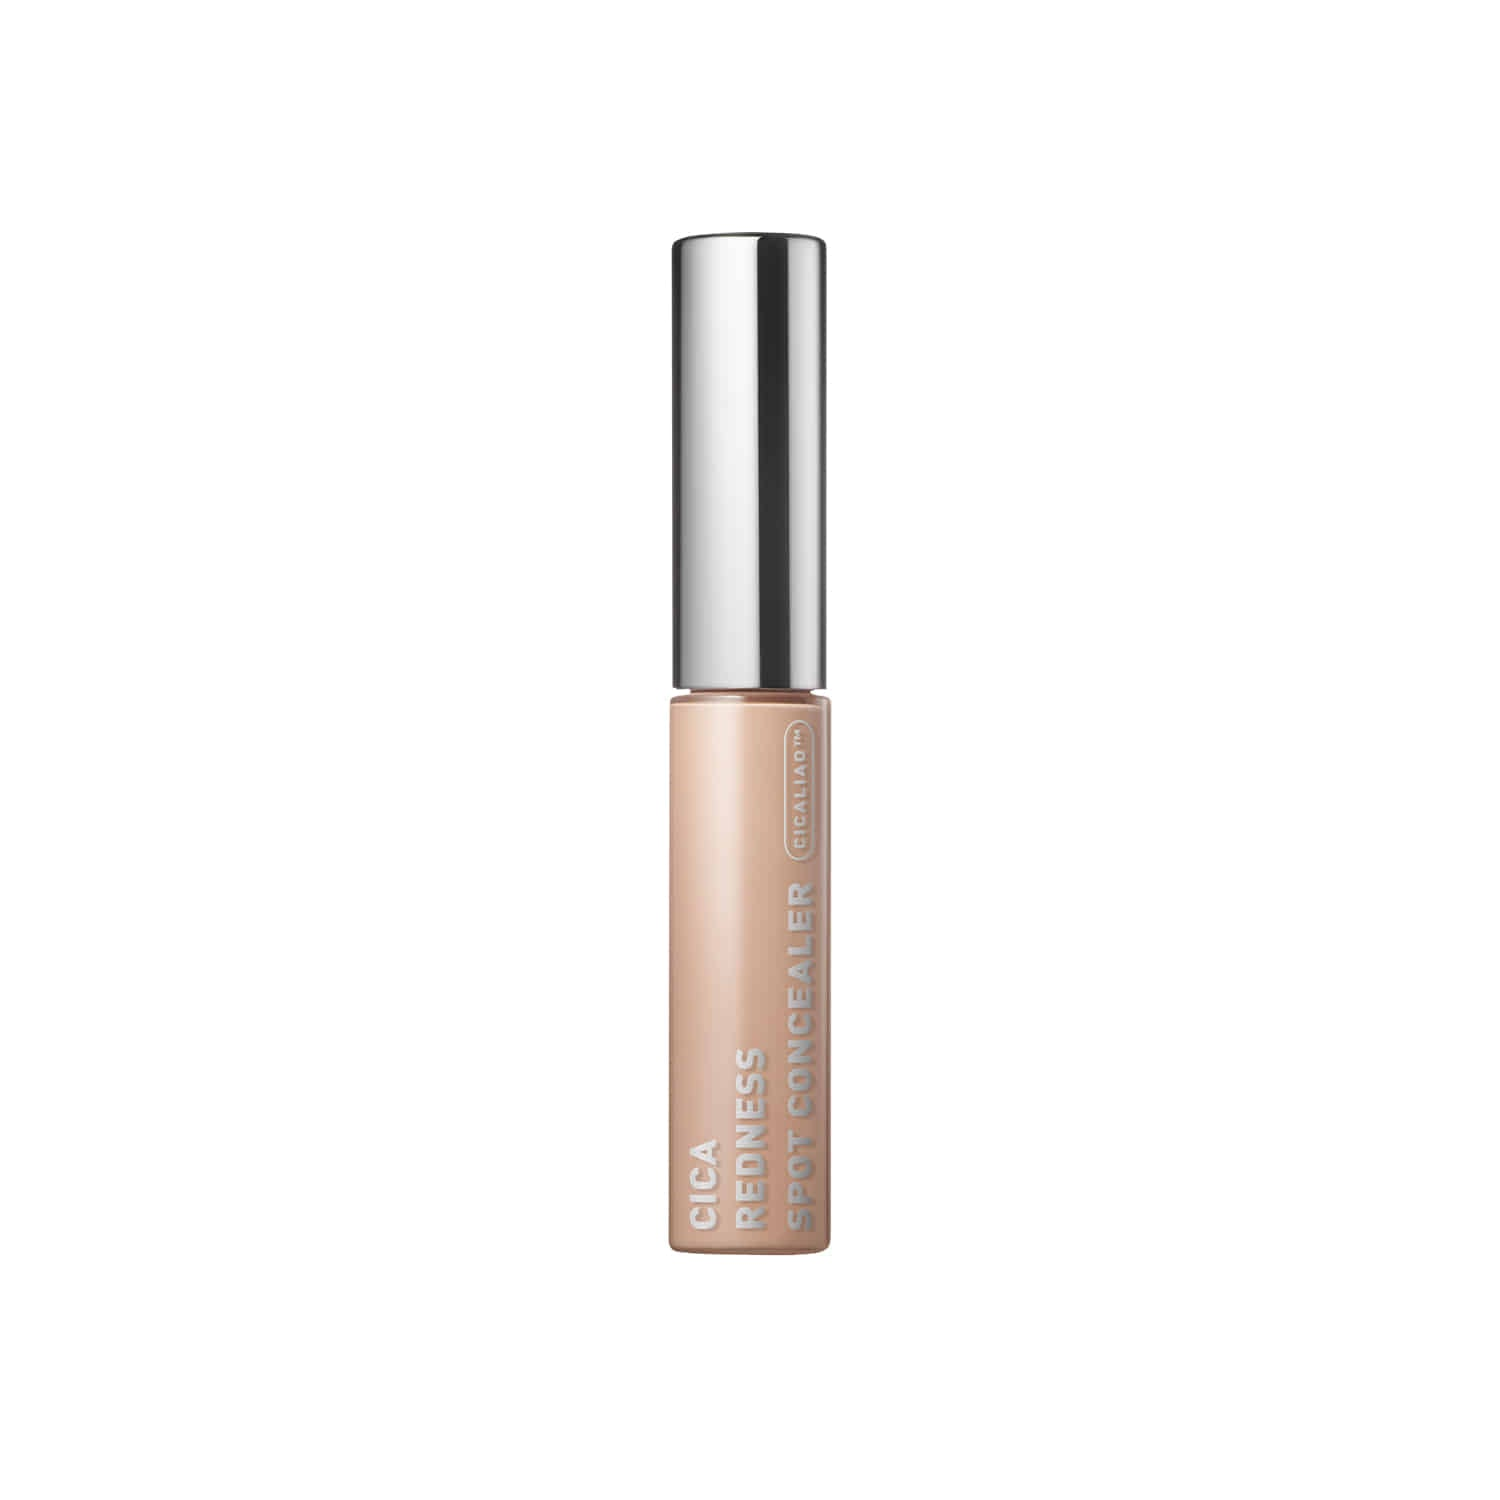 [VT COSMETICS] VT Cica Redness Spot Concealer